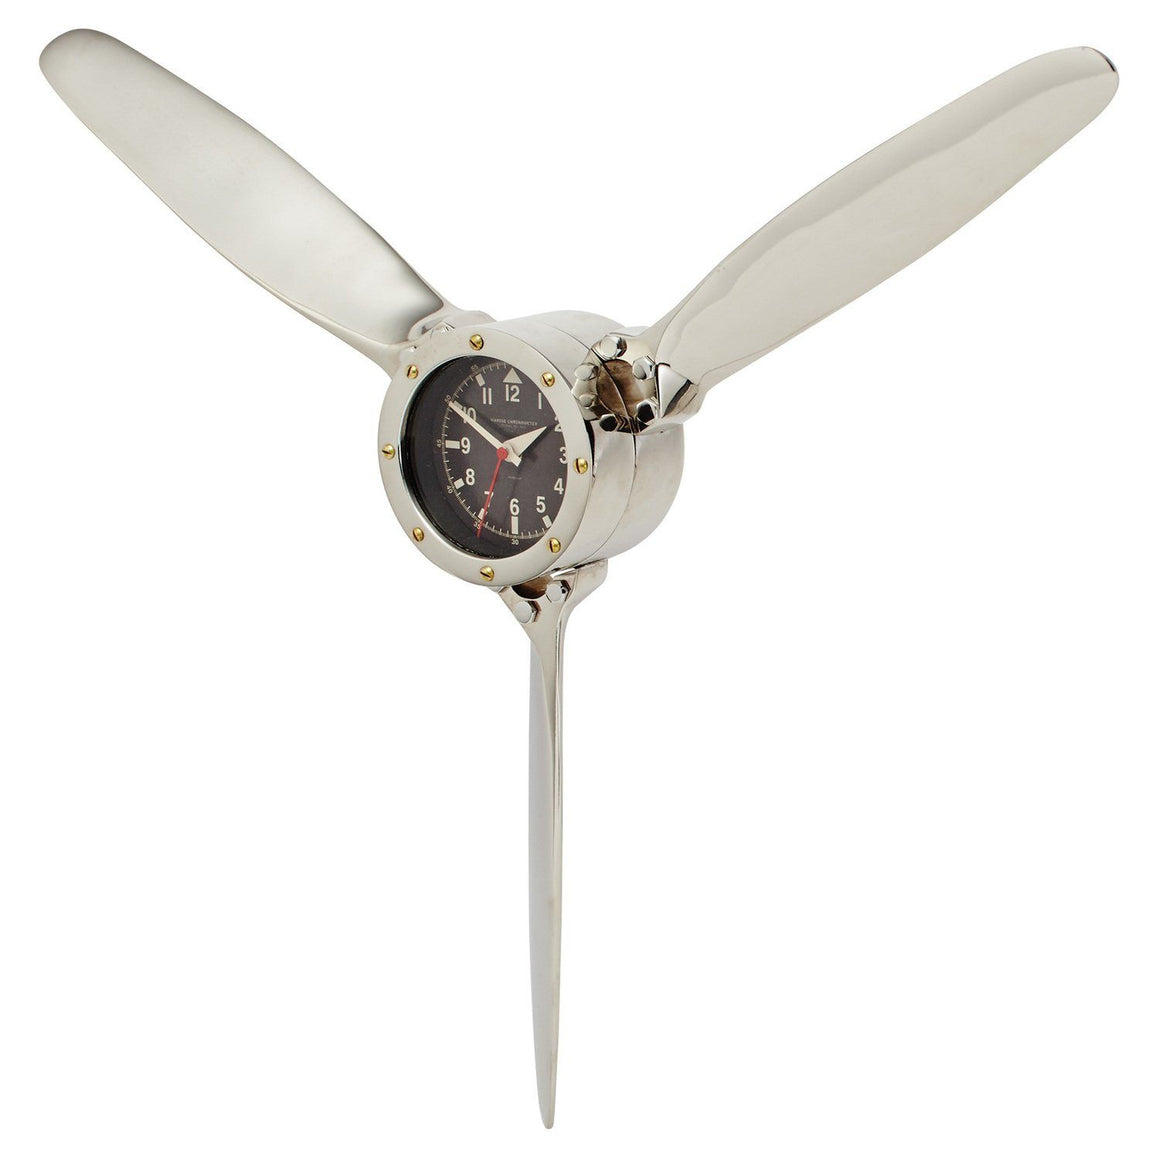 Propeller Wall Clock - Polished Aluminum - Aviator -  Machine Age - Rustic Deco Incorporated